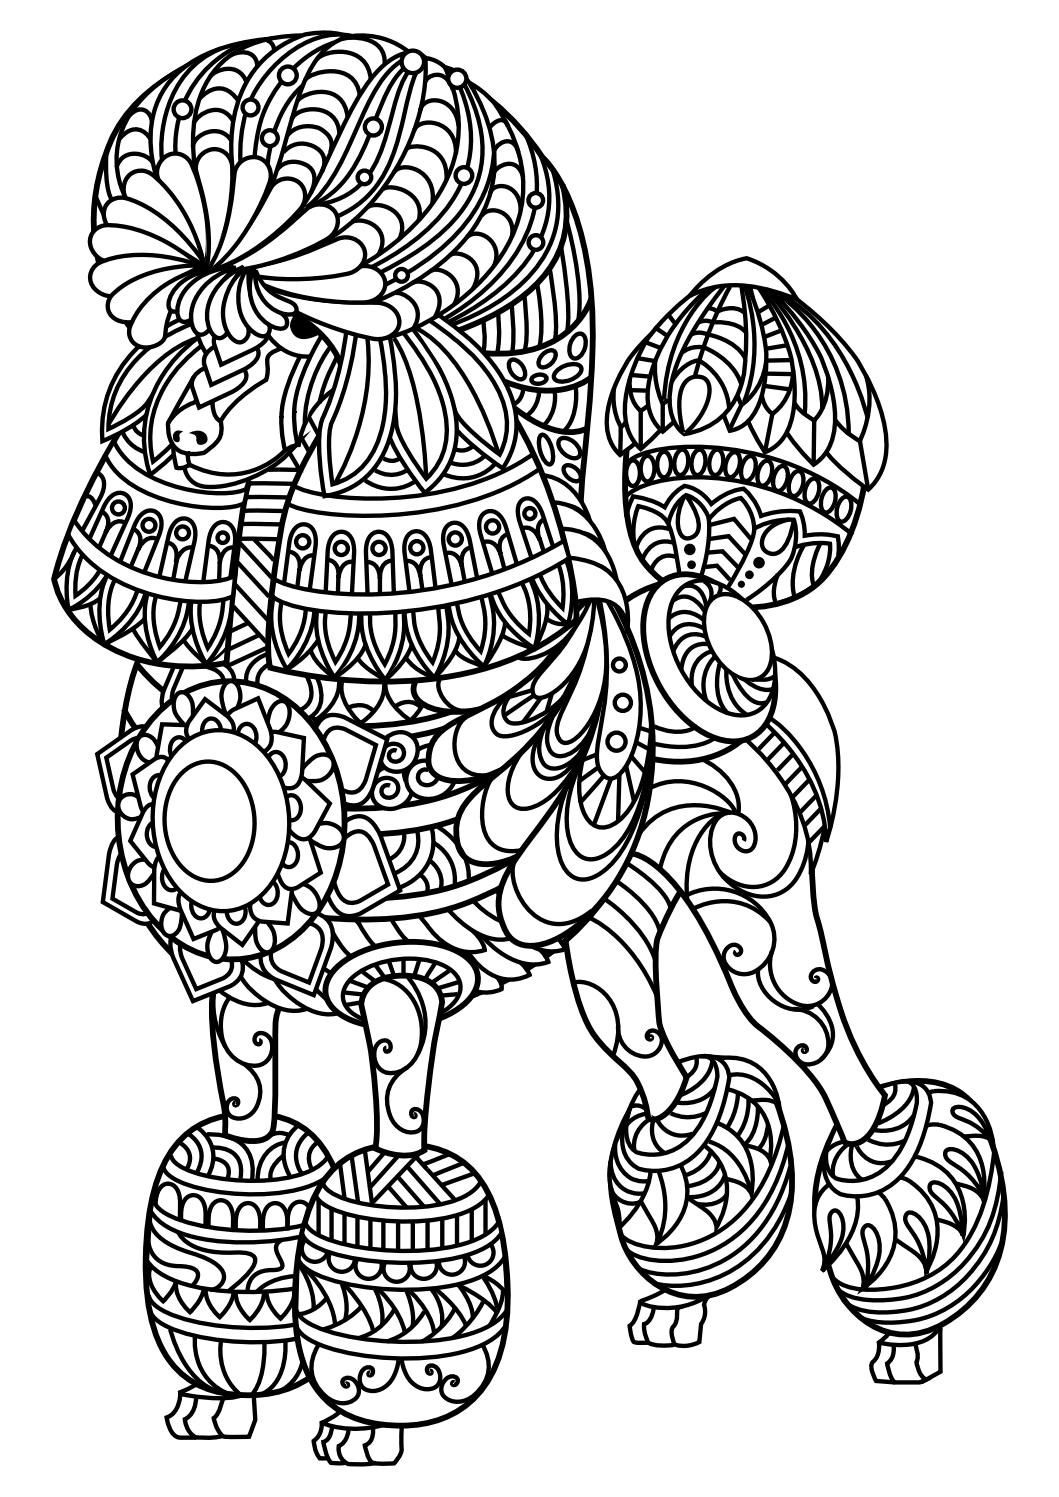 Animal coloring pages pdf | Adult coloring, Coloring books and Dog cat